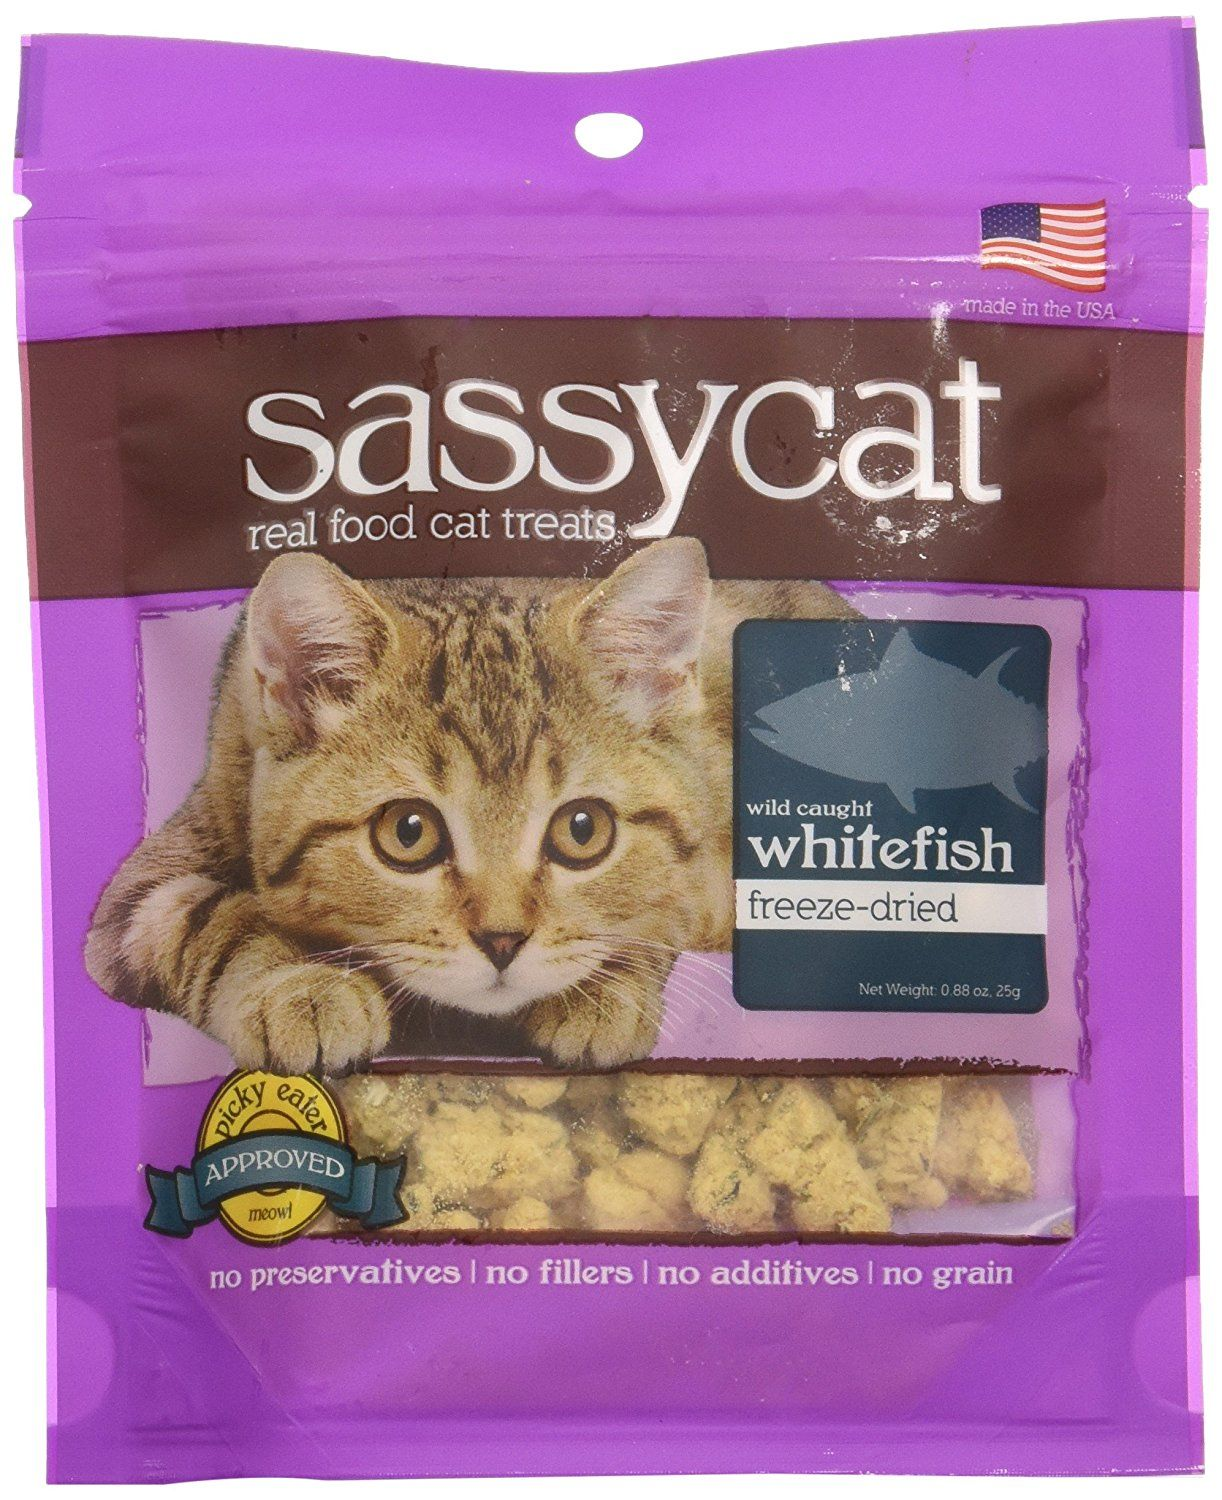 Herbsmith Freeze Dried Whitefish Formula Sassy Cat Treats 1 25 Oz Click On The Image For Additional Details Cat Treats Sassy Cat Cat Pet Supplies